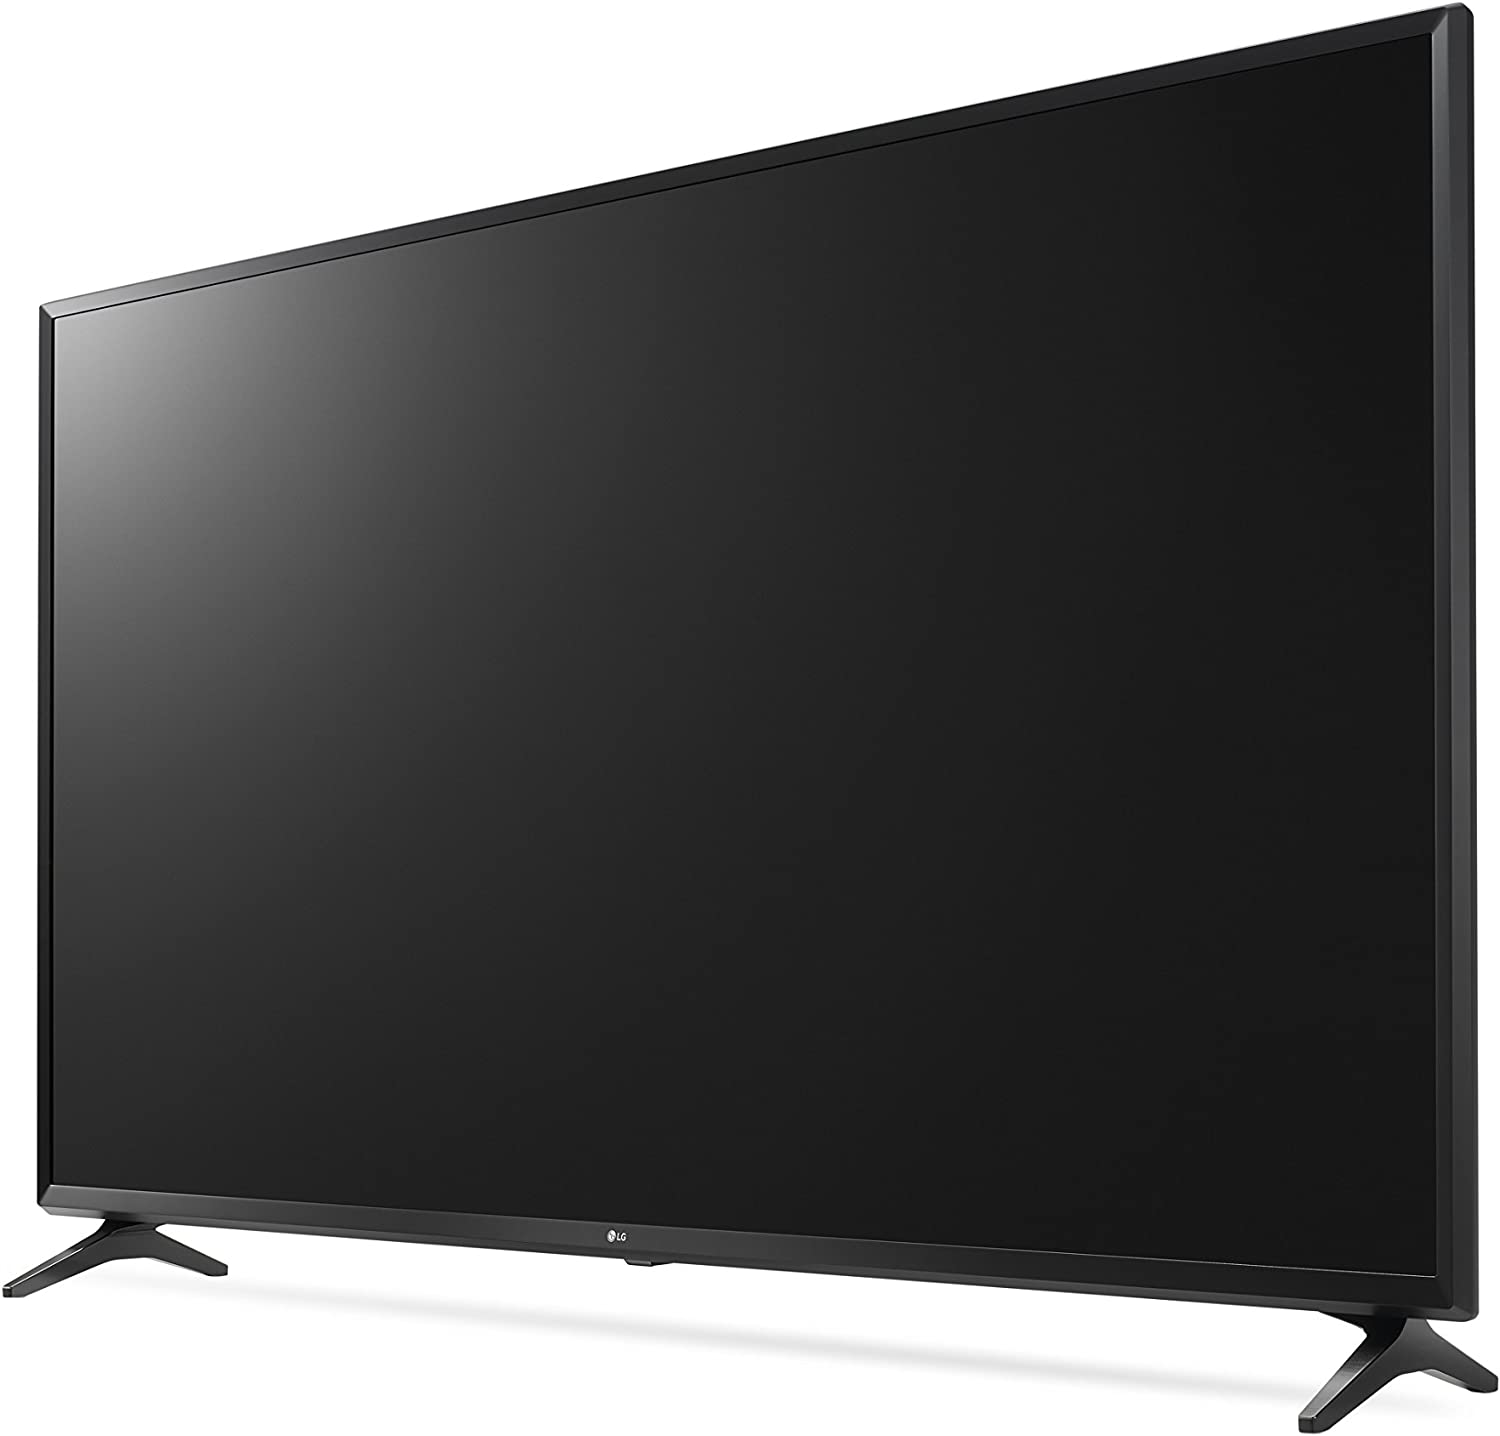 LG 55UK6100PLB - Televisor de 55 (Smart TV, 4K Ultra HD, 3840 x 2160 Píxeles, Quad Core): Lg: Amazon.es: Electrónica